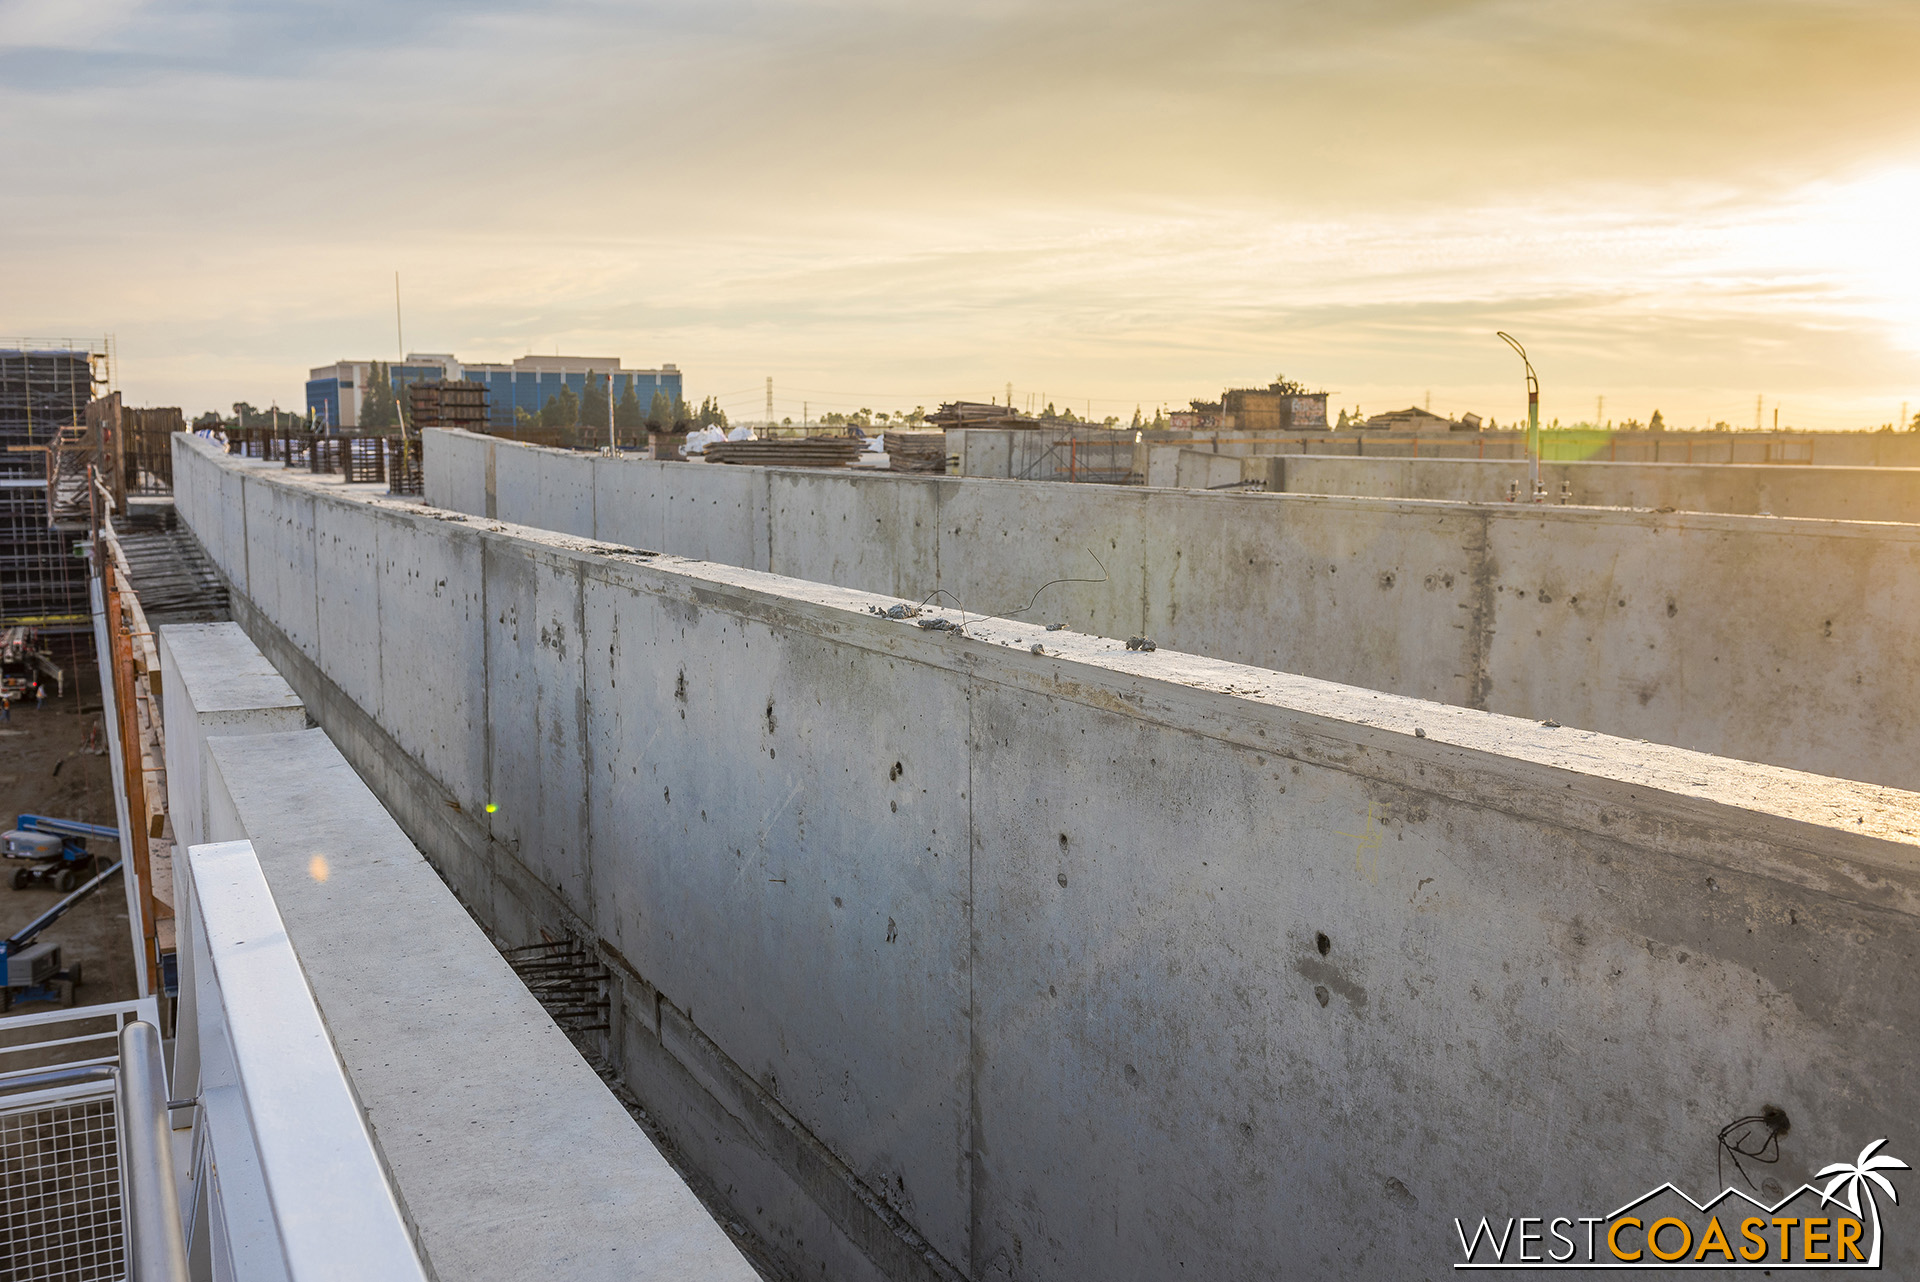 The double set of walls guards the pedestrian path, while another concrete wall on the far right serves as the other vehicular barrier at the side of the bridge.